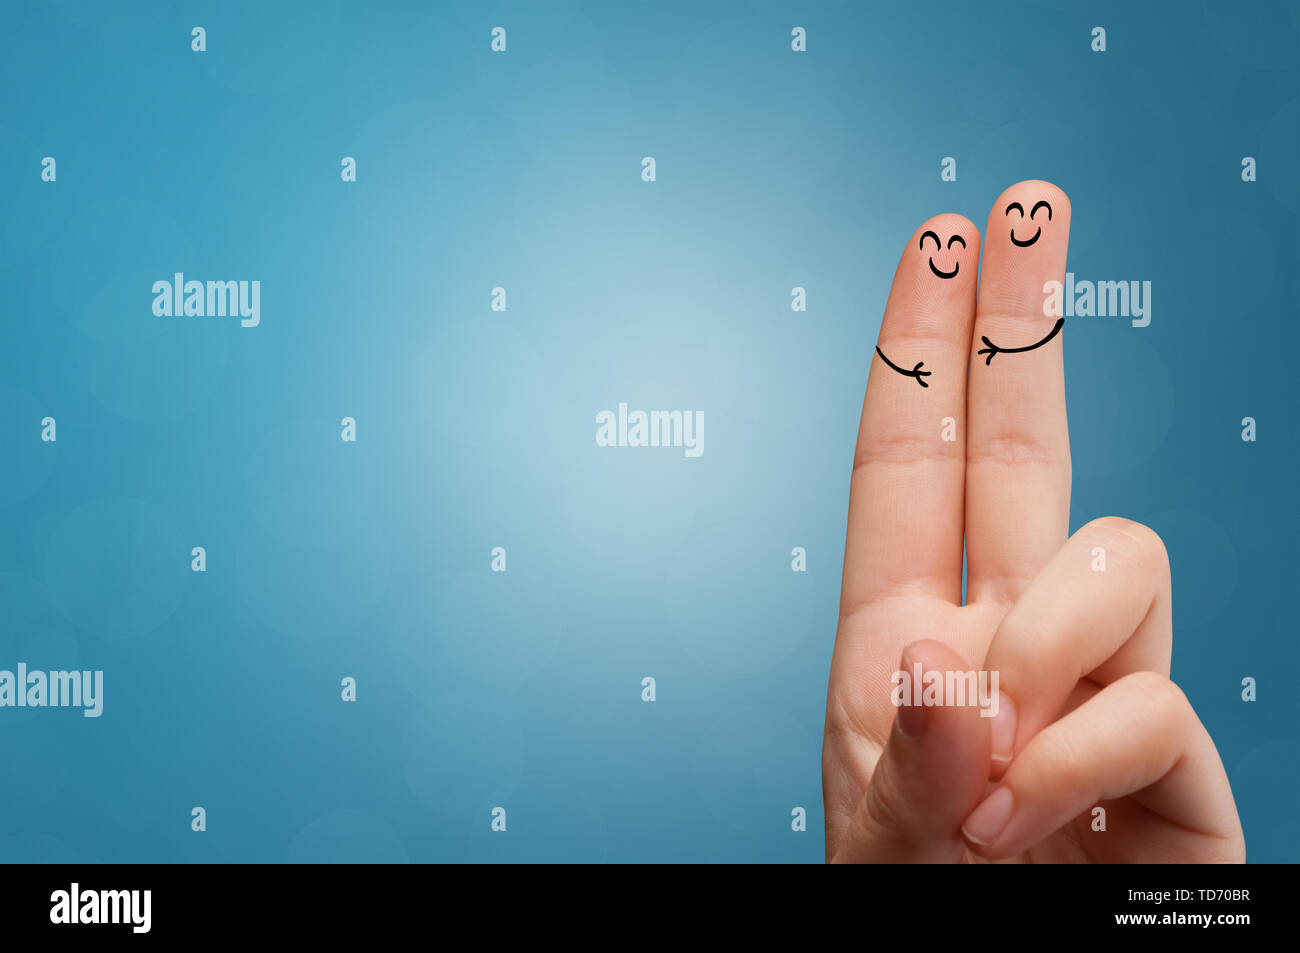 Joyful fingers smiling with colorful background concept - Stock Image